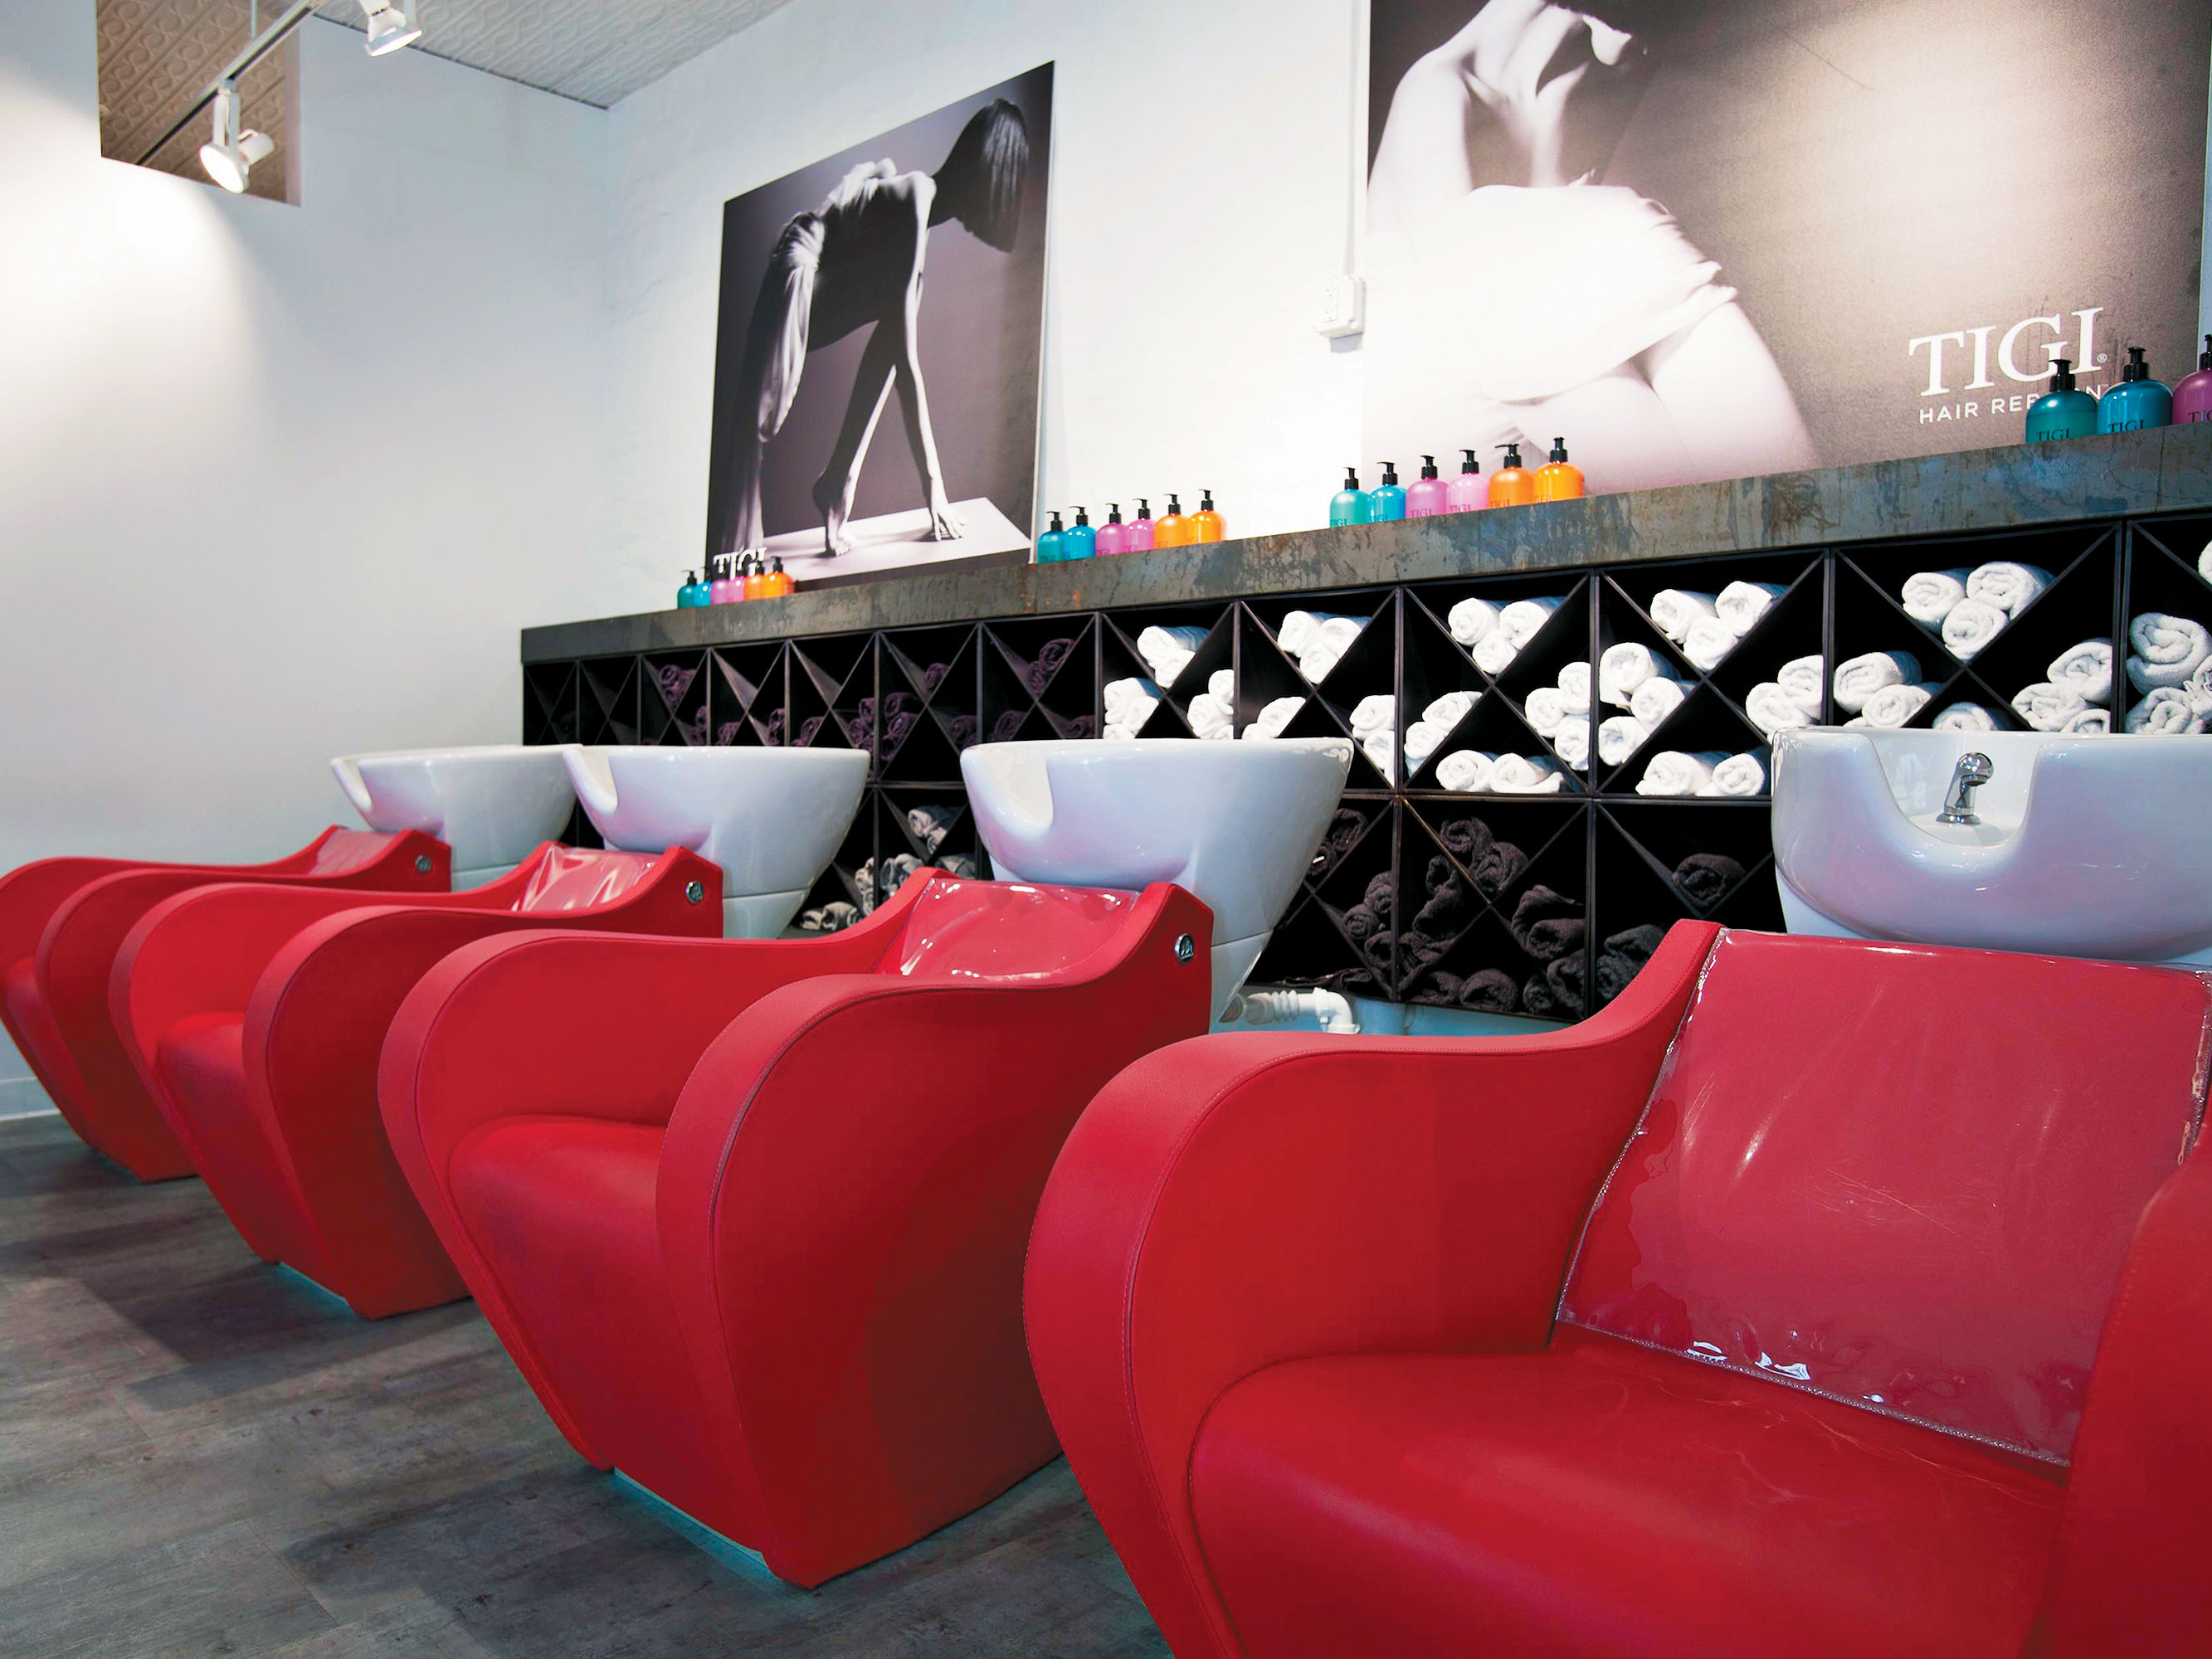 The Drawing Room Salon Captures The Essence of Art Through Hair